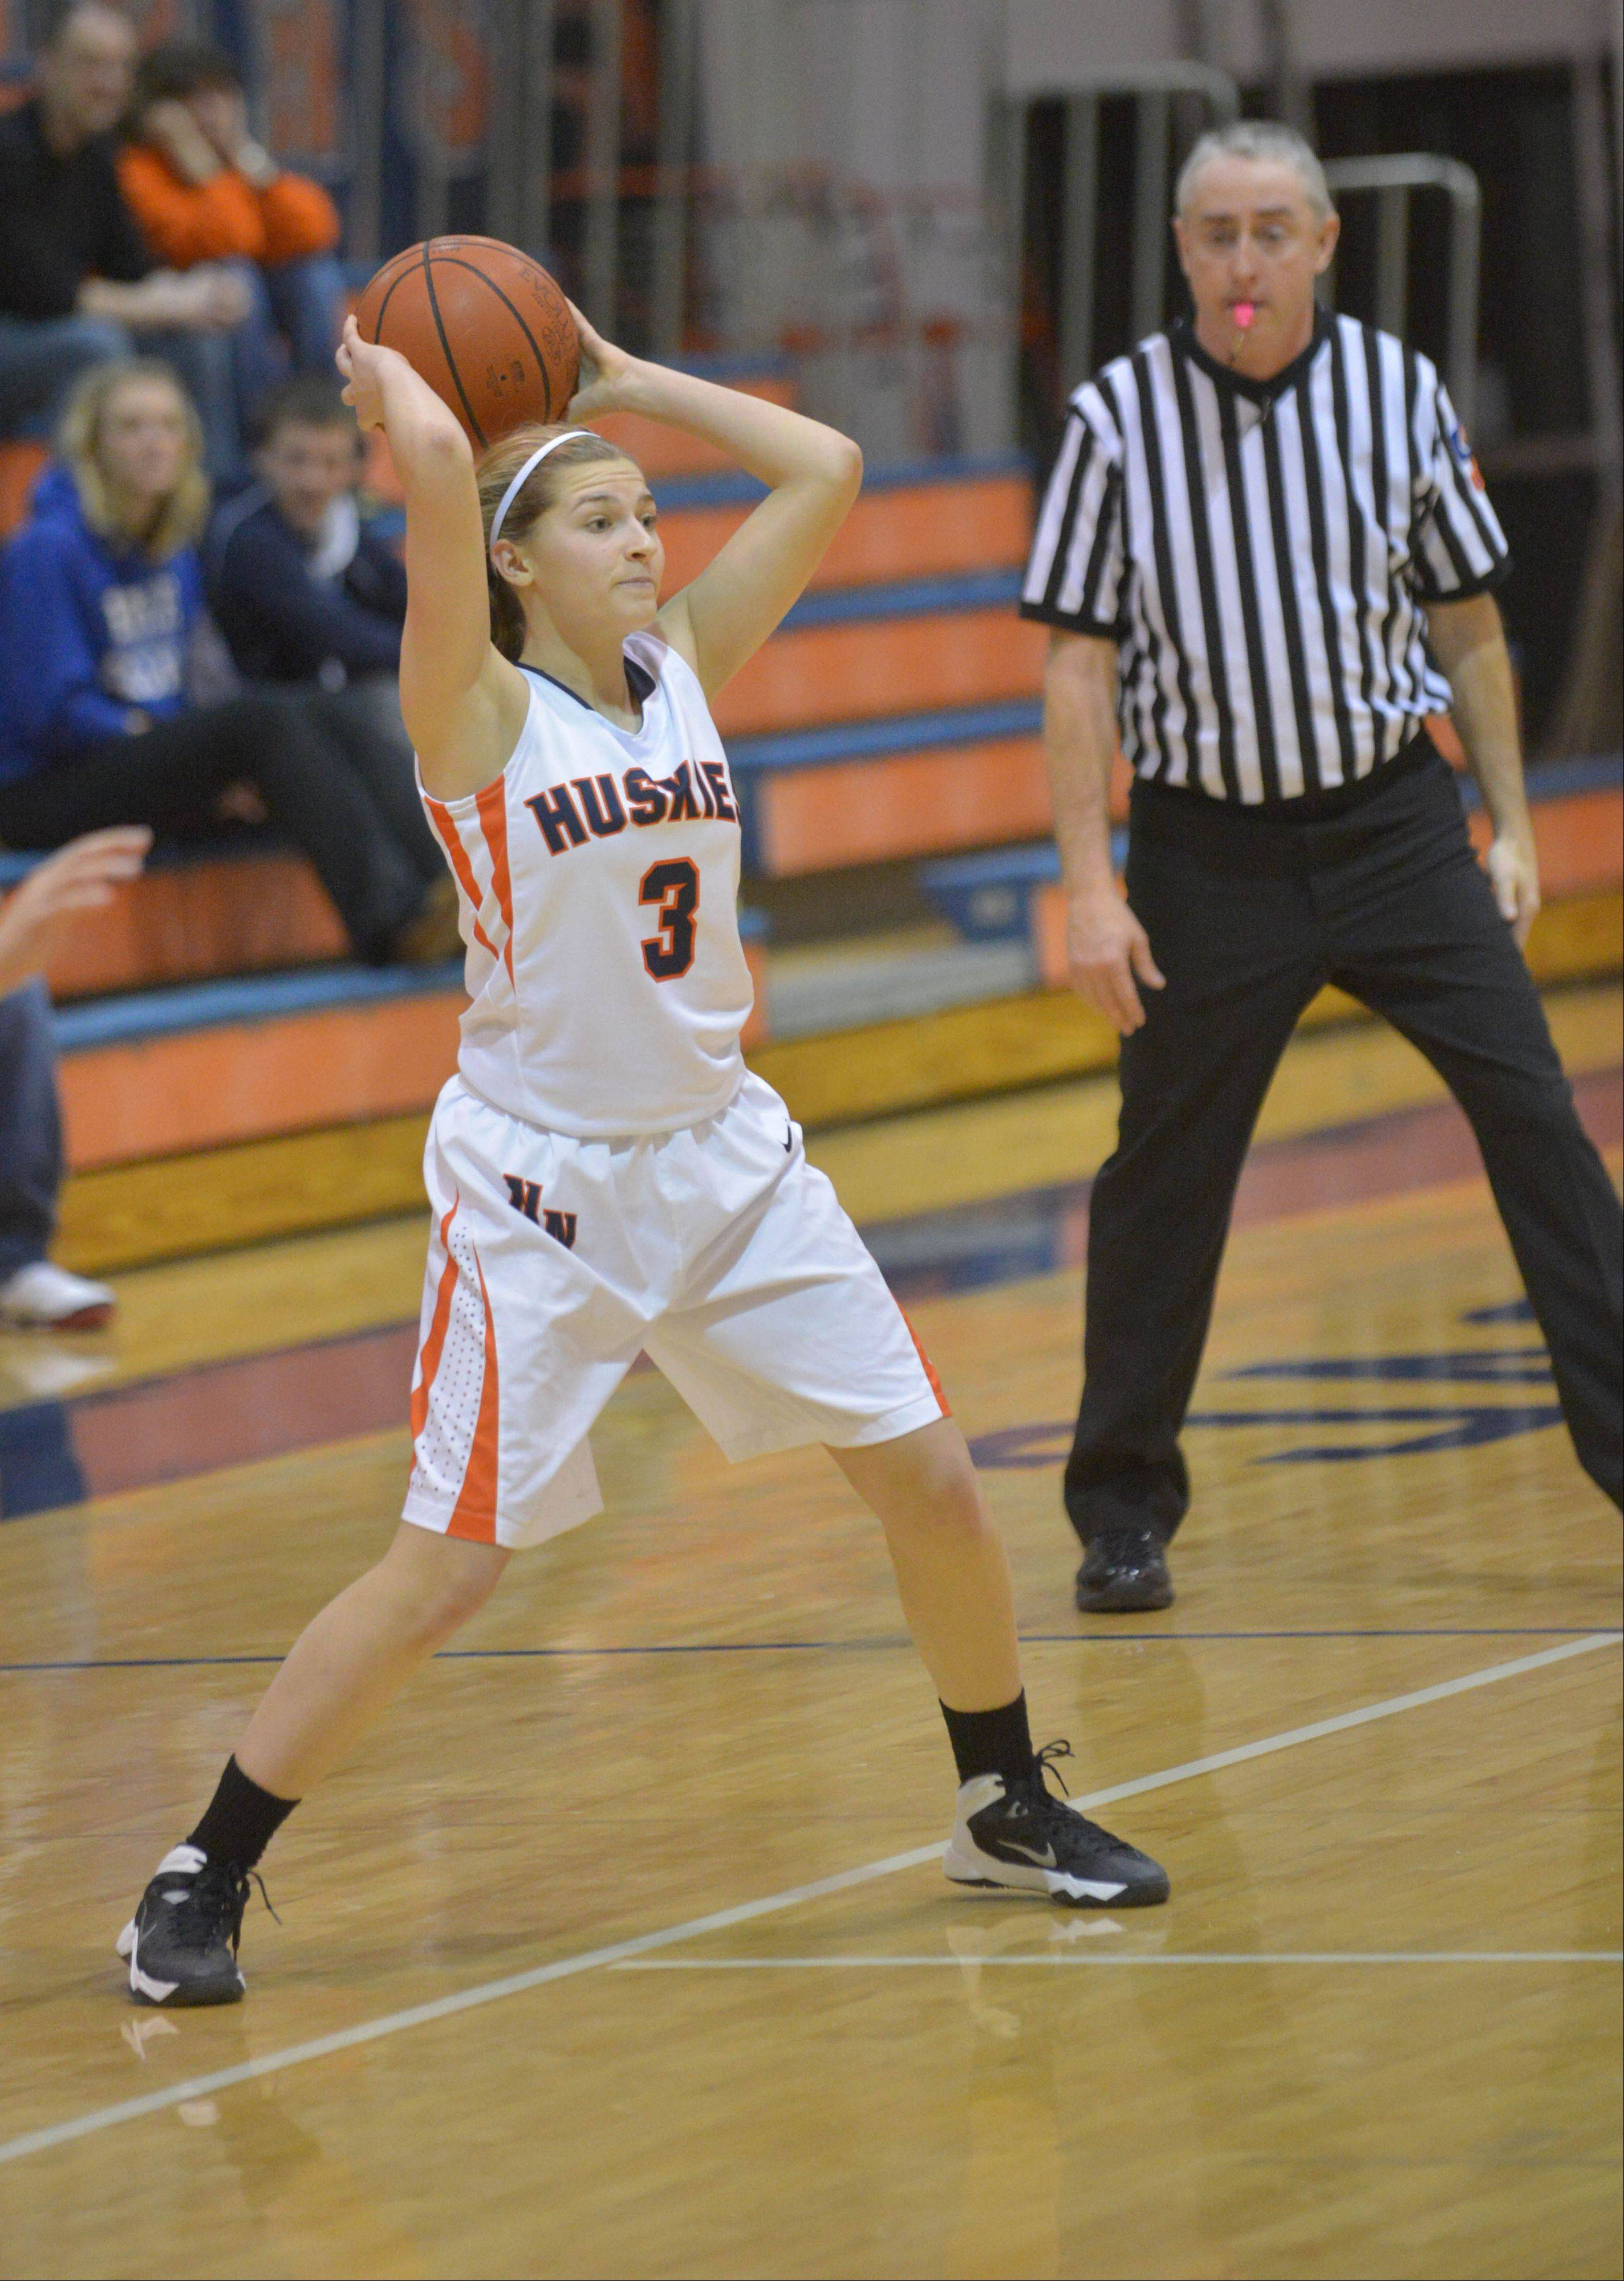 Olivia Stapleton of Naperville North looks to pass during the Lake Park at Naperville North girls basketball game Thursday.